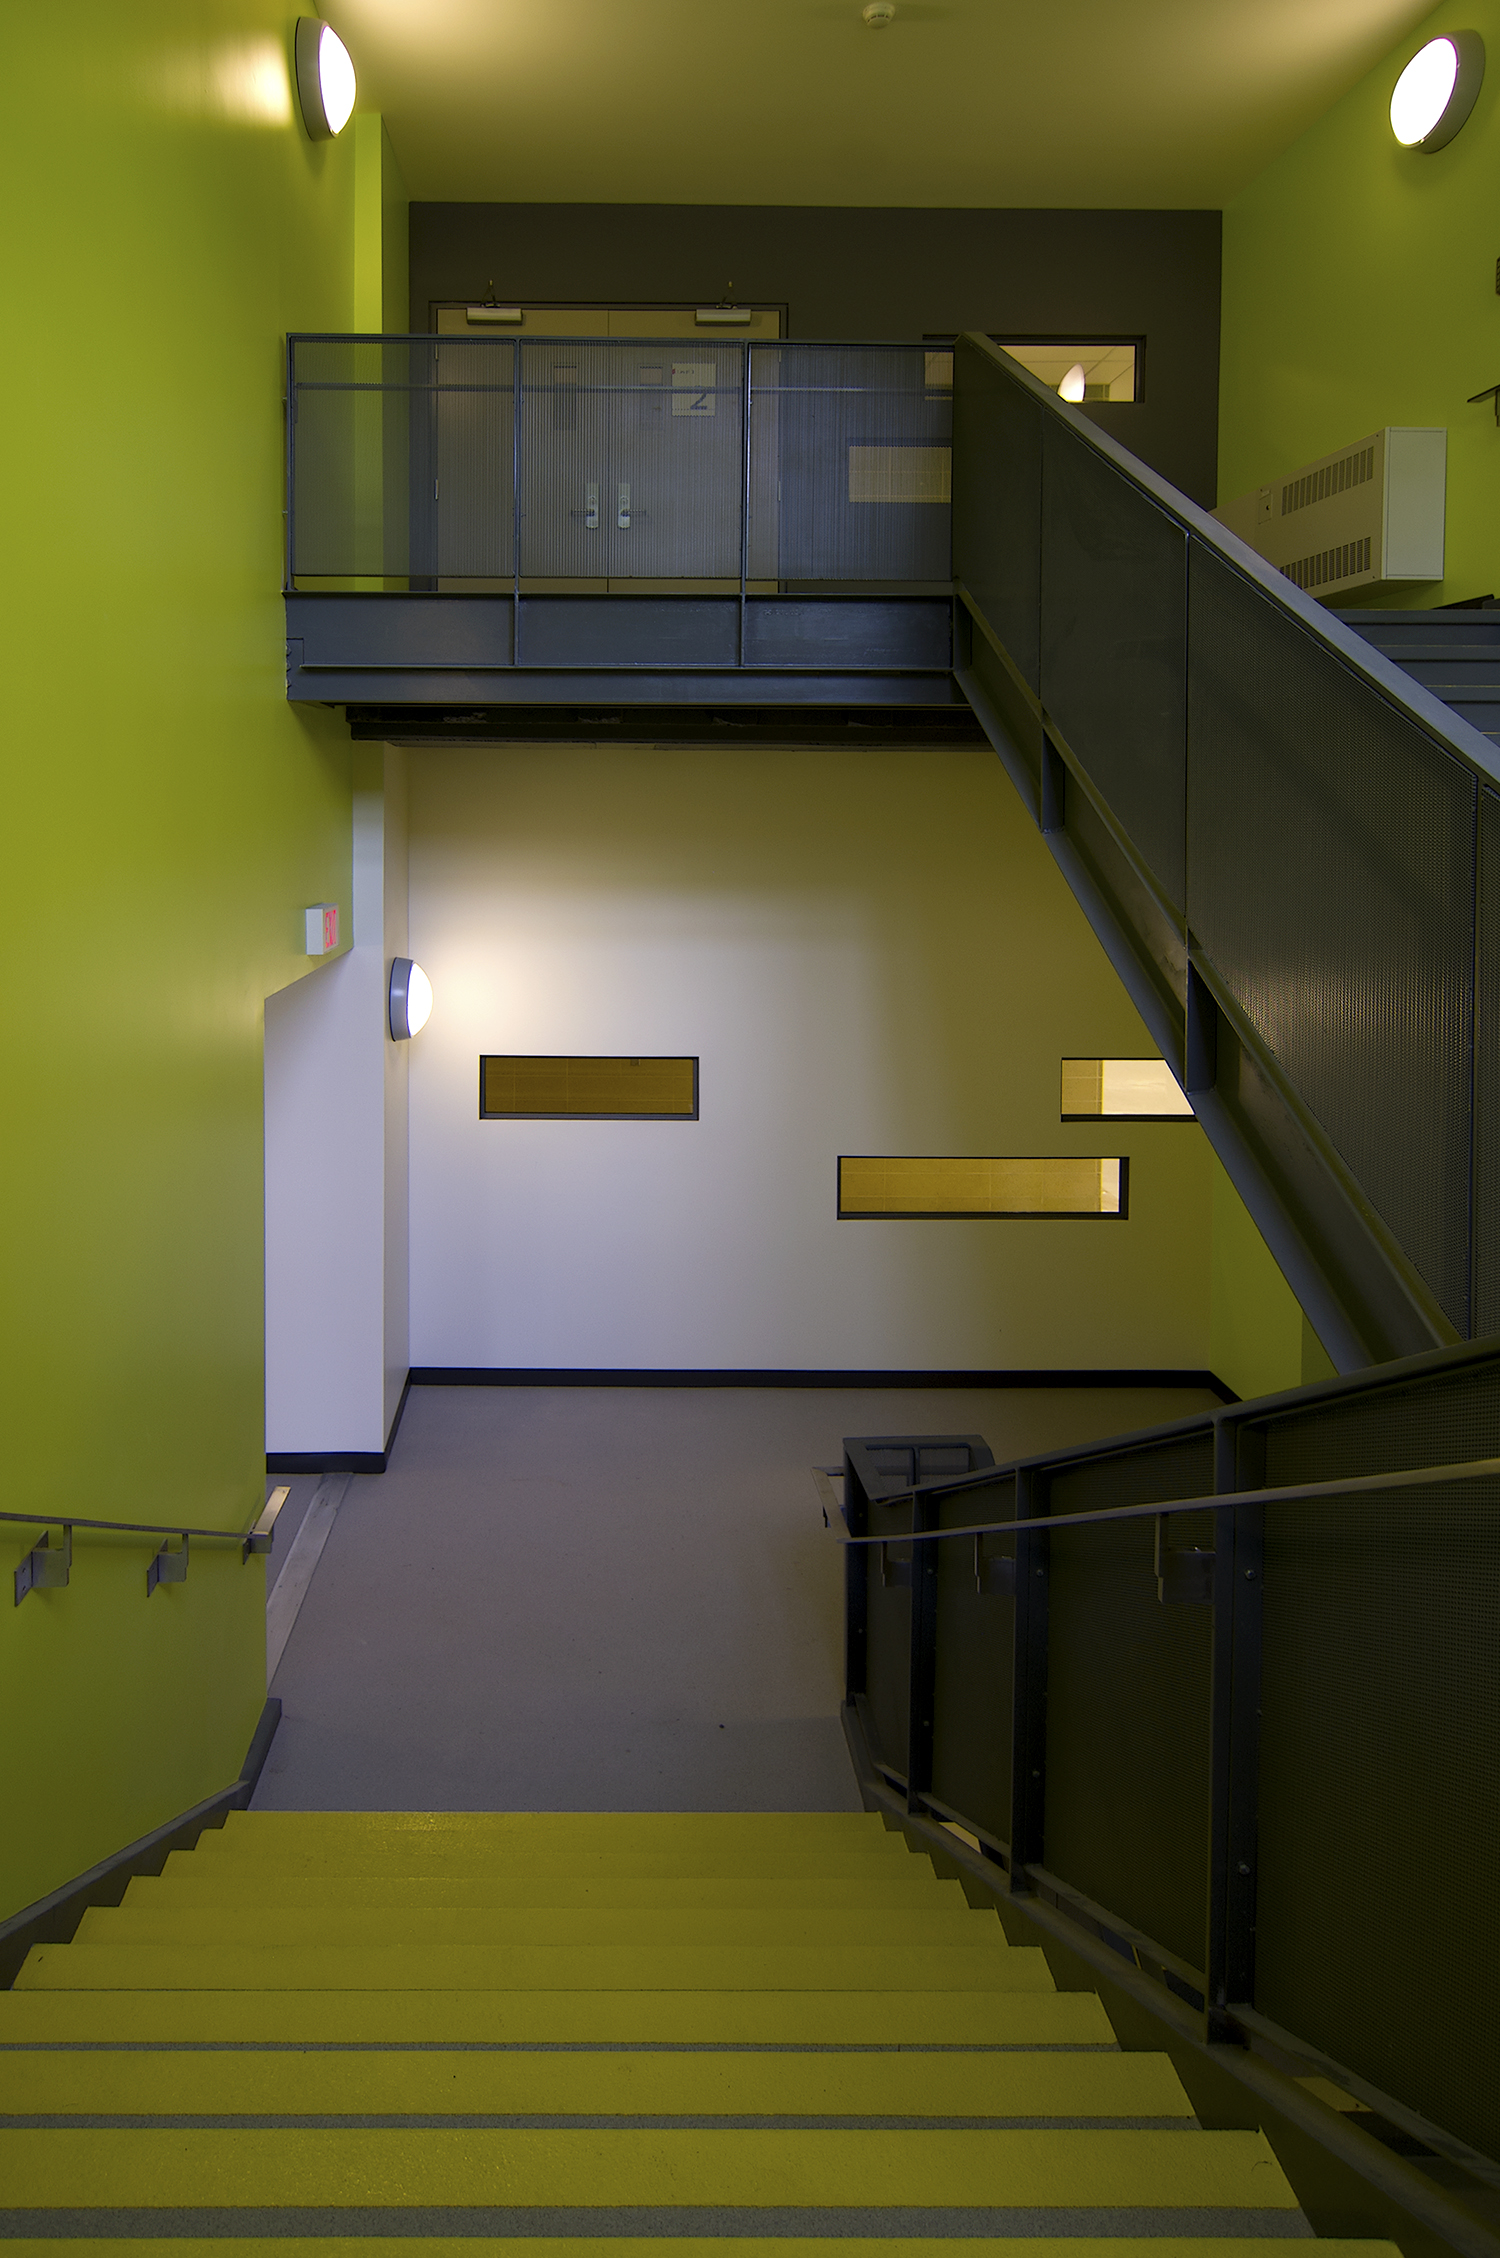 Science A - new exit stair